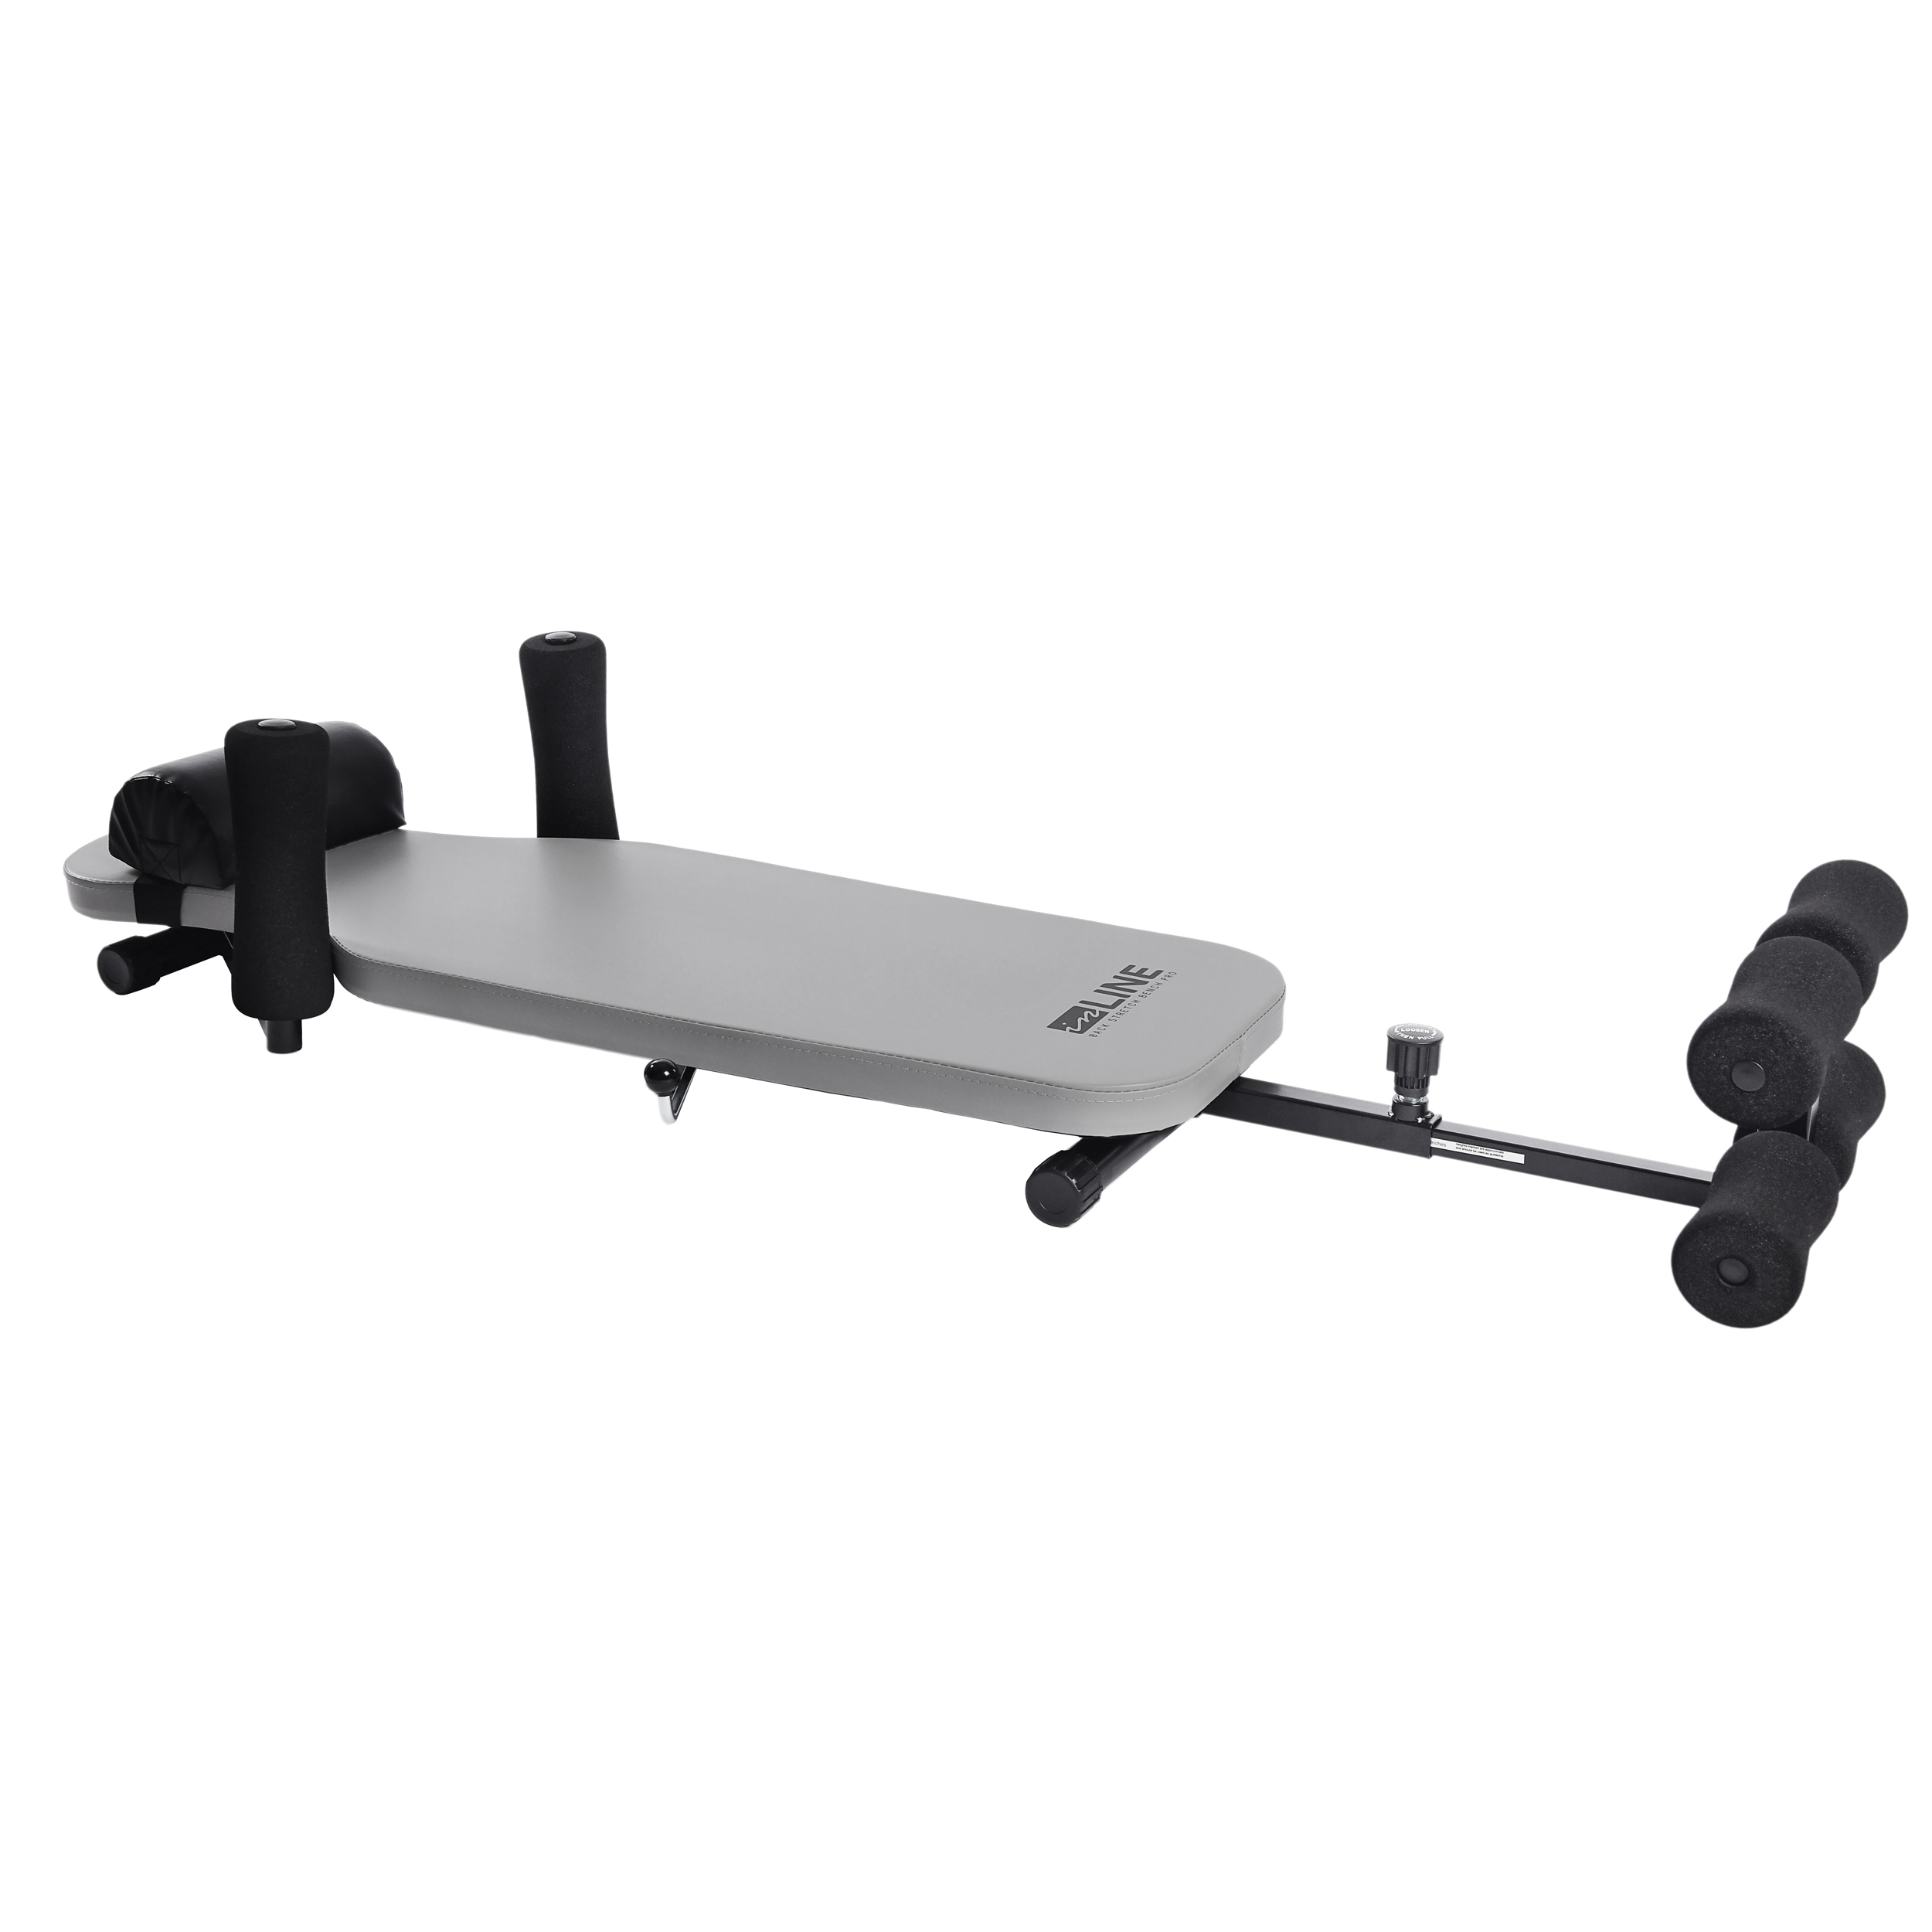 Stamina InLine Back Stretch Bench Pro side view.